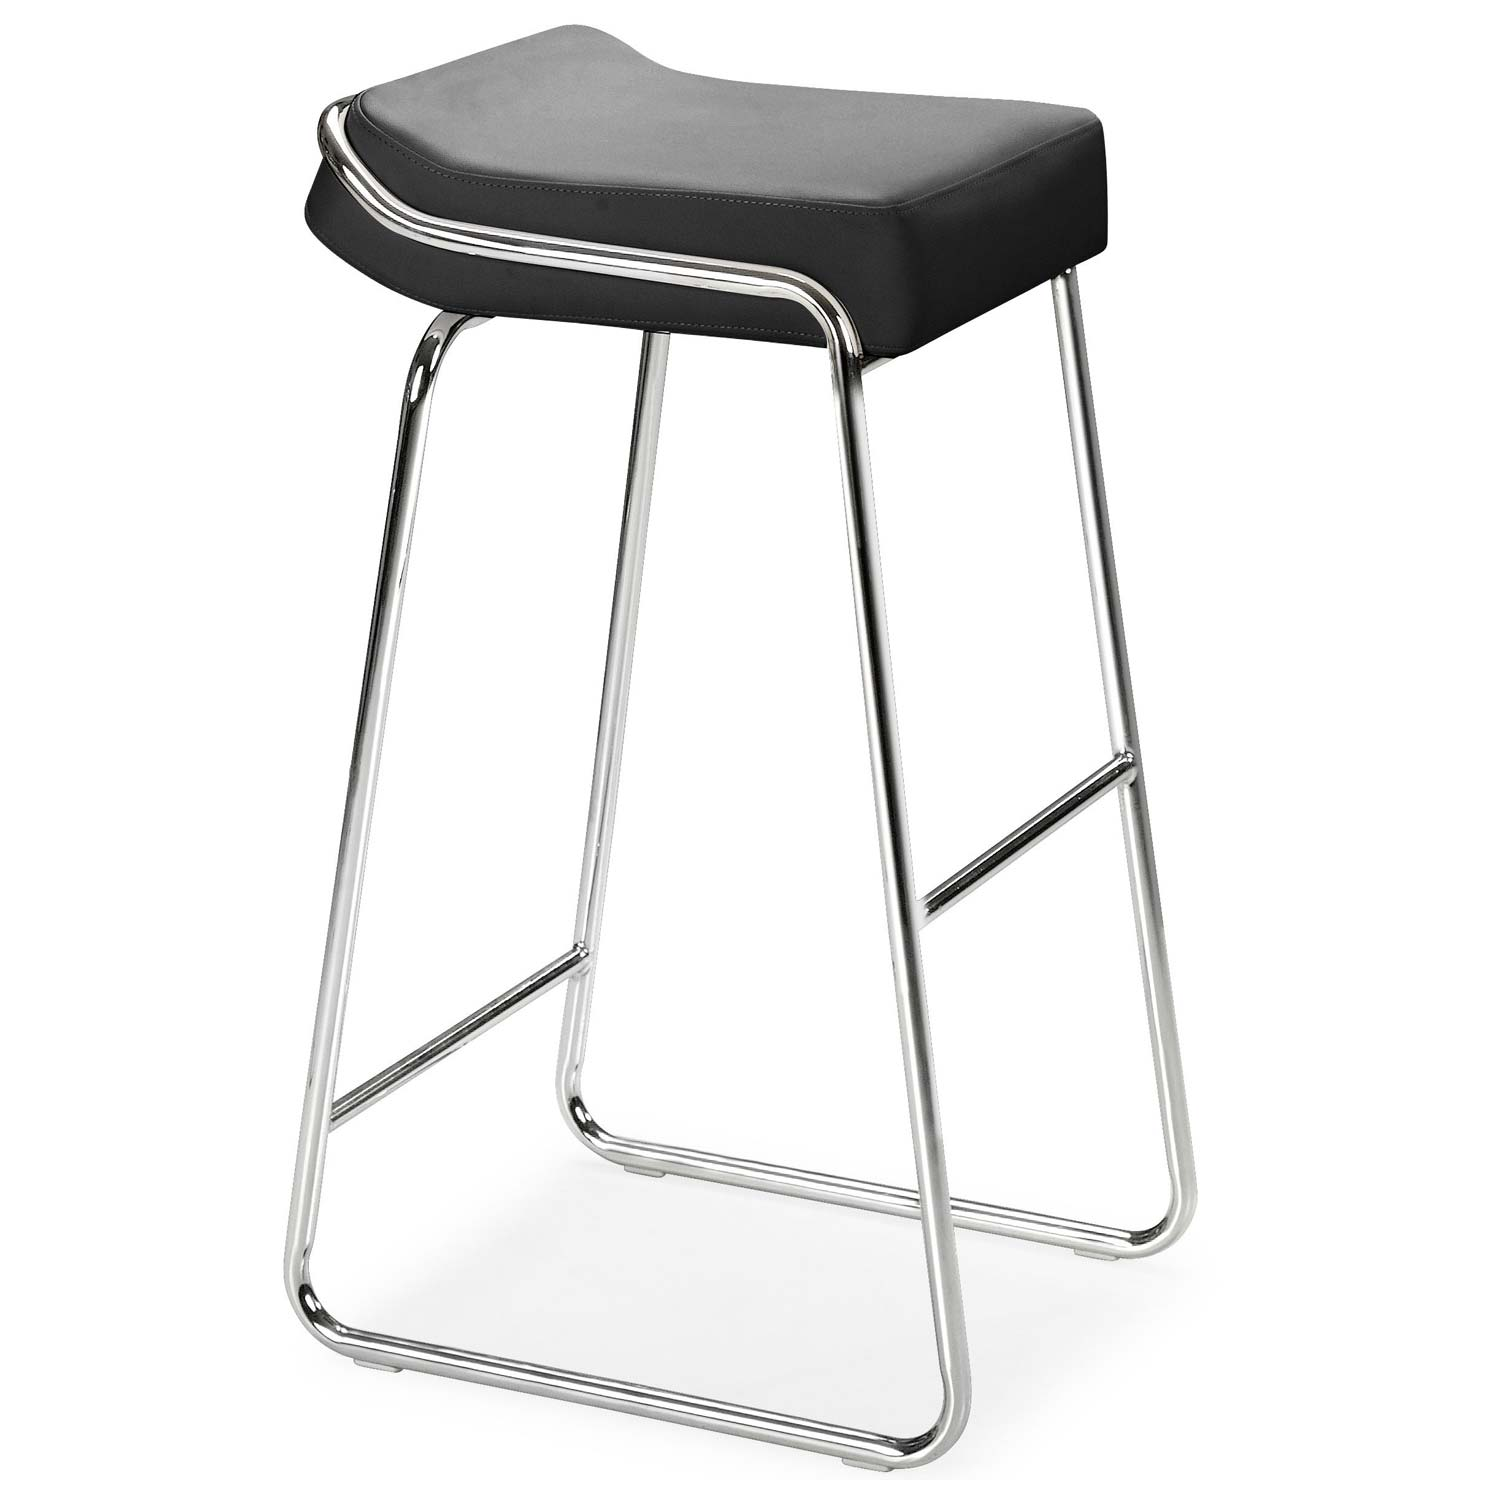 Piano 32  Backless Bar Stool - Chrome Leatherette - ZM-30004X-PIANSTL ...  sc 1 st  DCG Stores & Piano 32